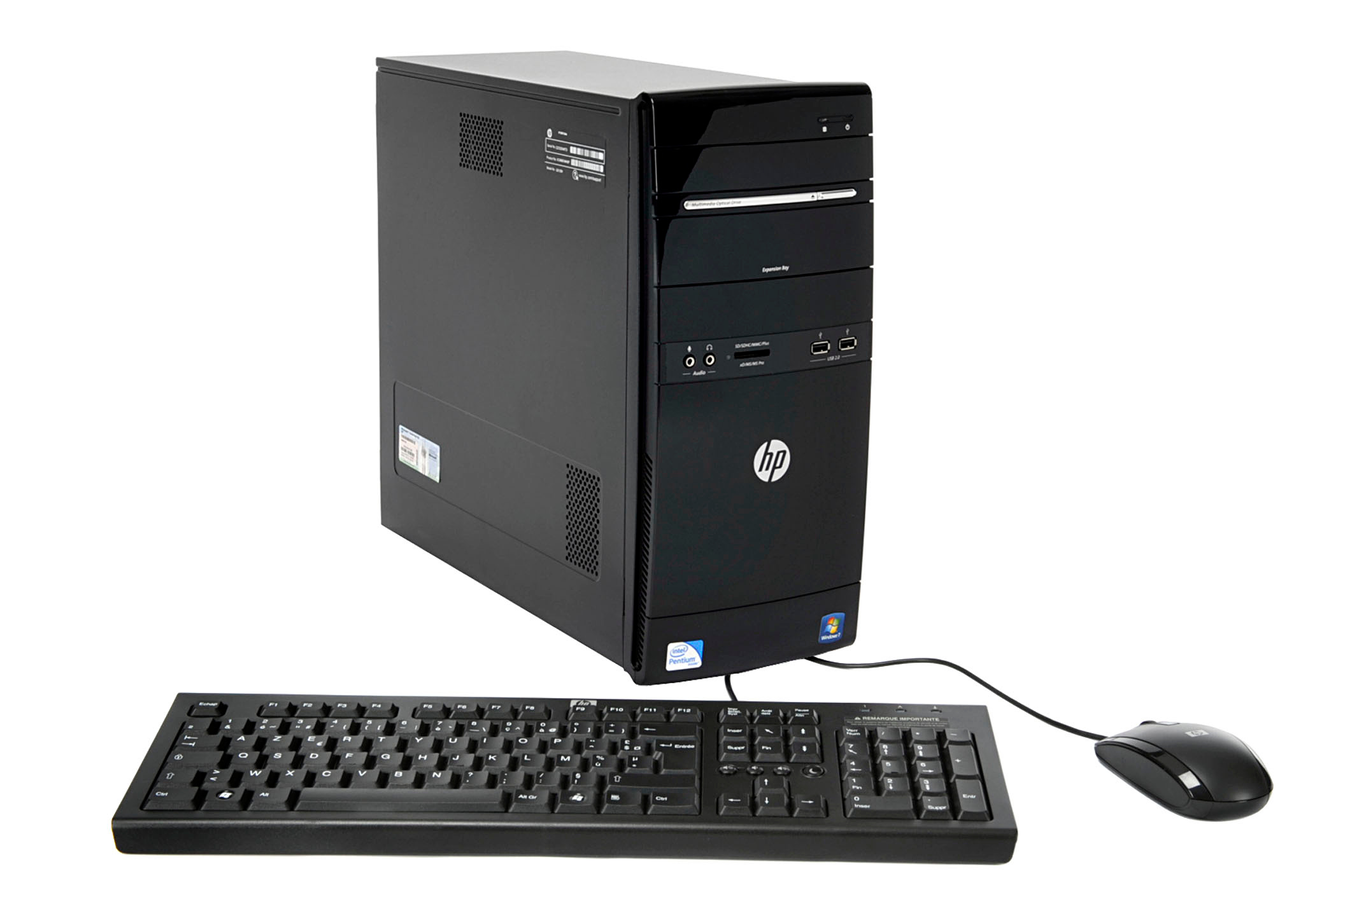 Pc de bureau hp g5135 3296121 darty - Darty informatique pc bureau ...